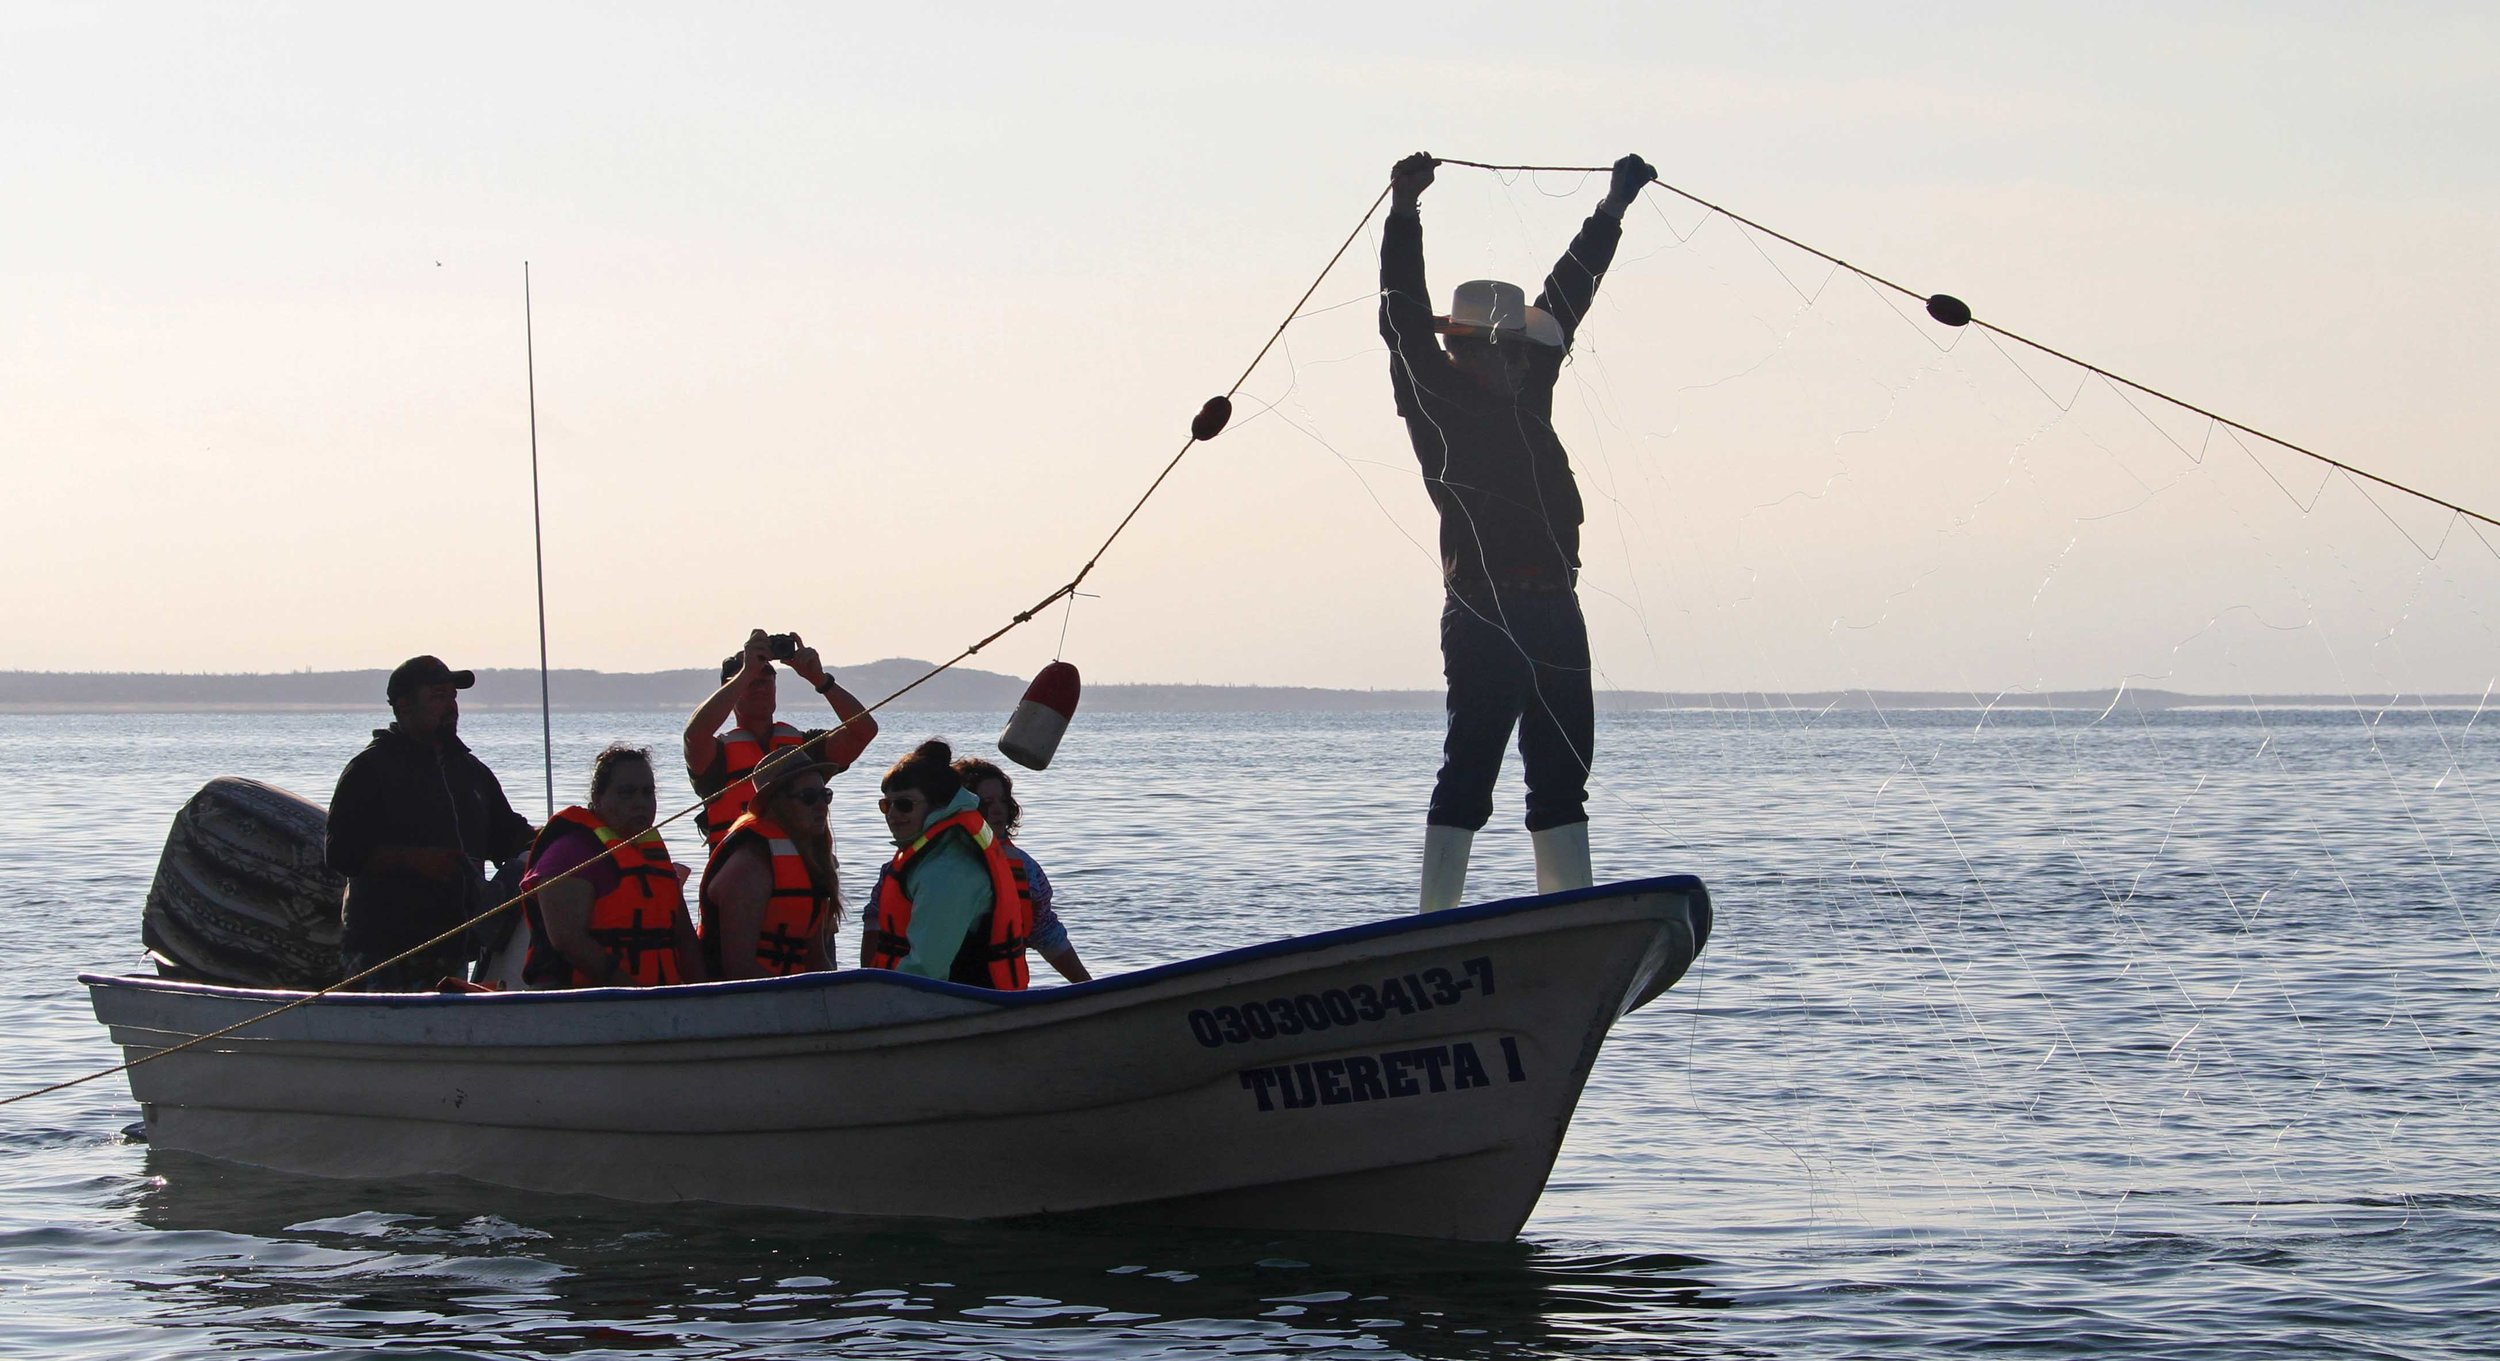 Tourists watch in Baja California, Mexico, as a fisherman conducts in-water sea turtle monitoring. © Karen Delaney Wolverton